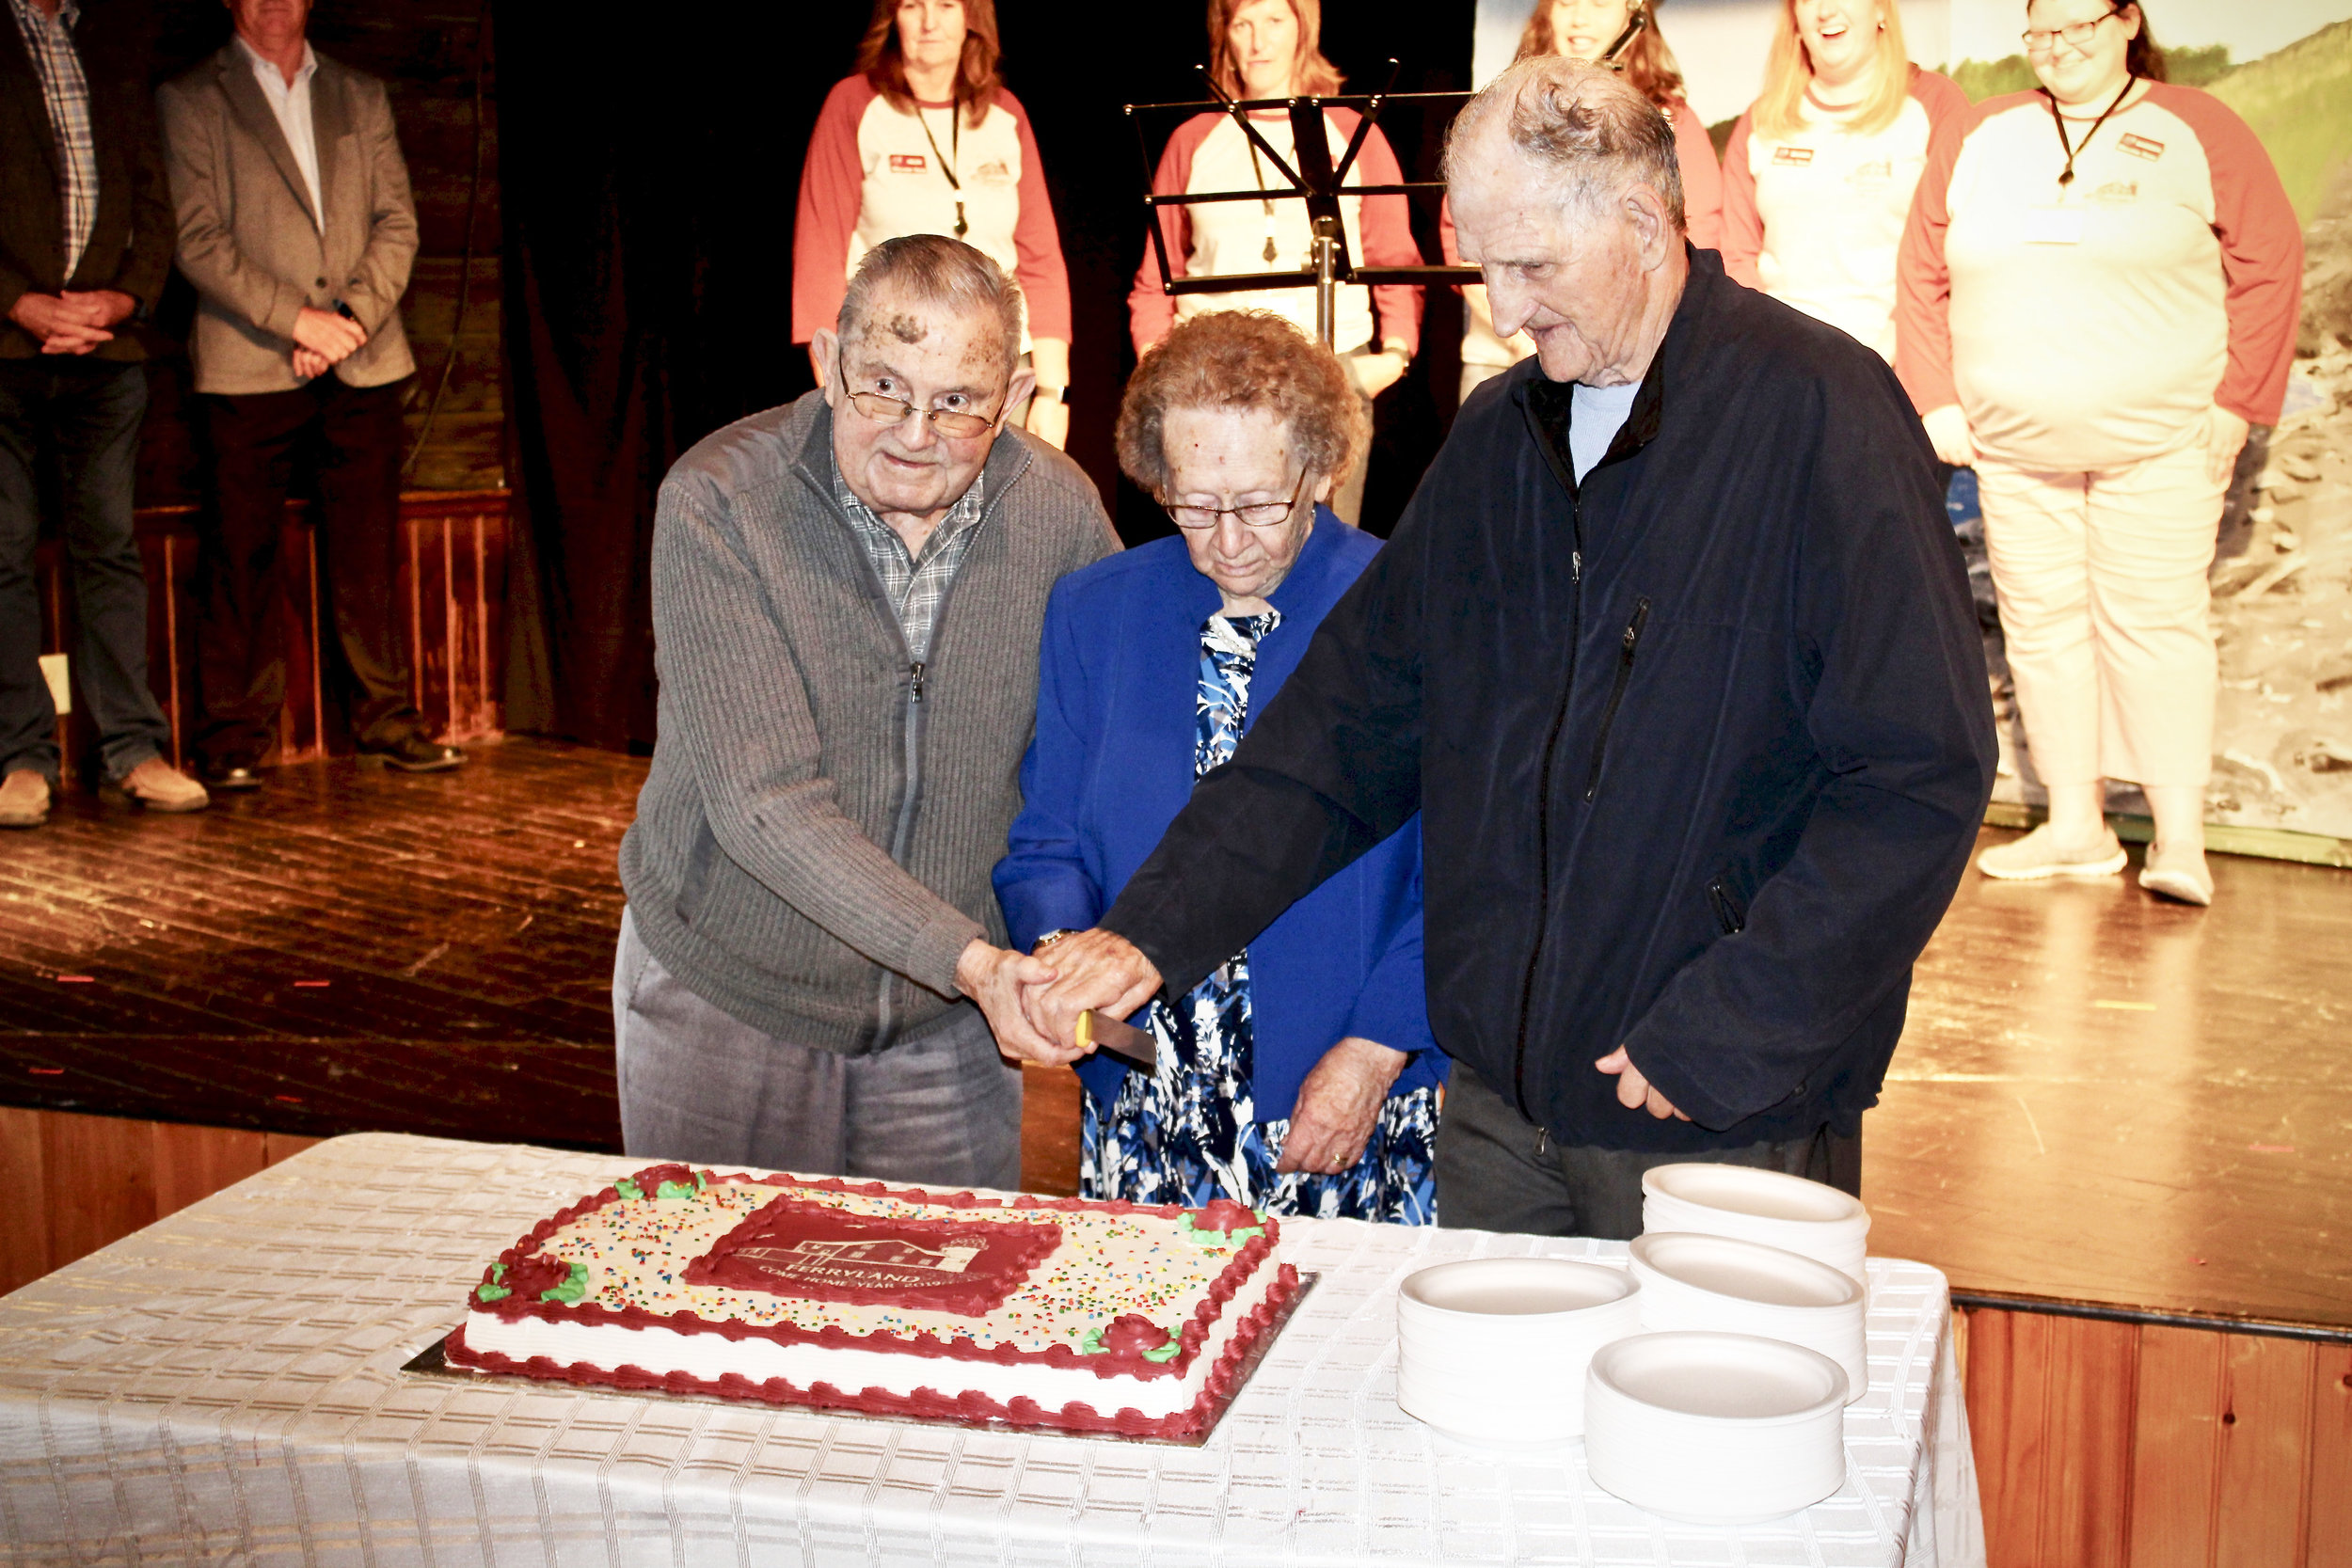 From left to right, Doug Windsor, Joan Costello and Phil Paul, Ferryland's three eldest residents, cut the Come Home year cake during the Opening Ceremonies. Nathan Ryan Photography